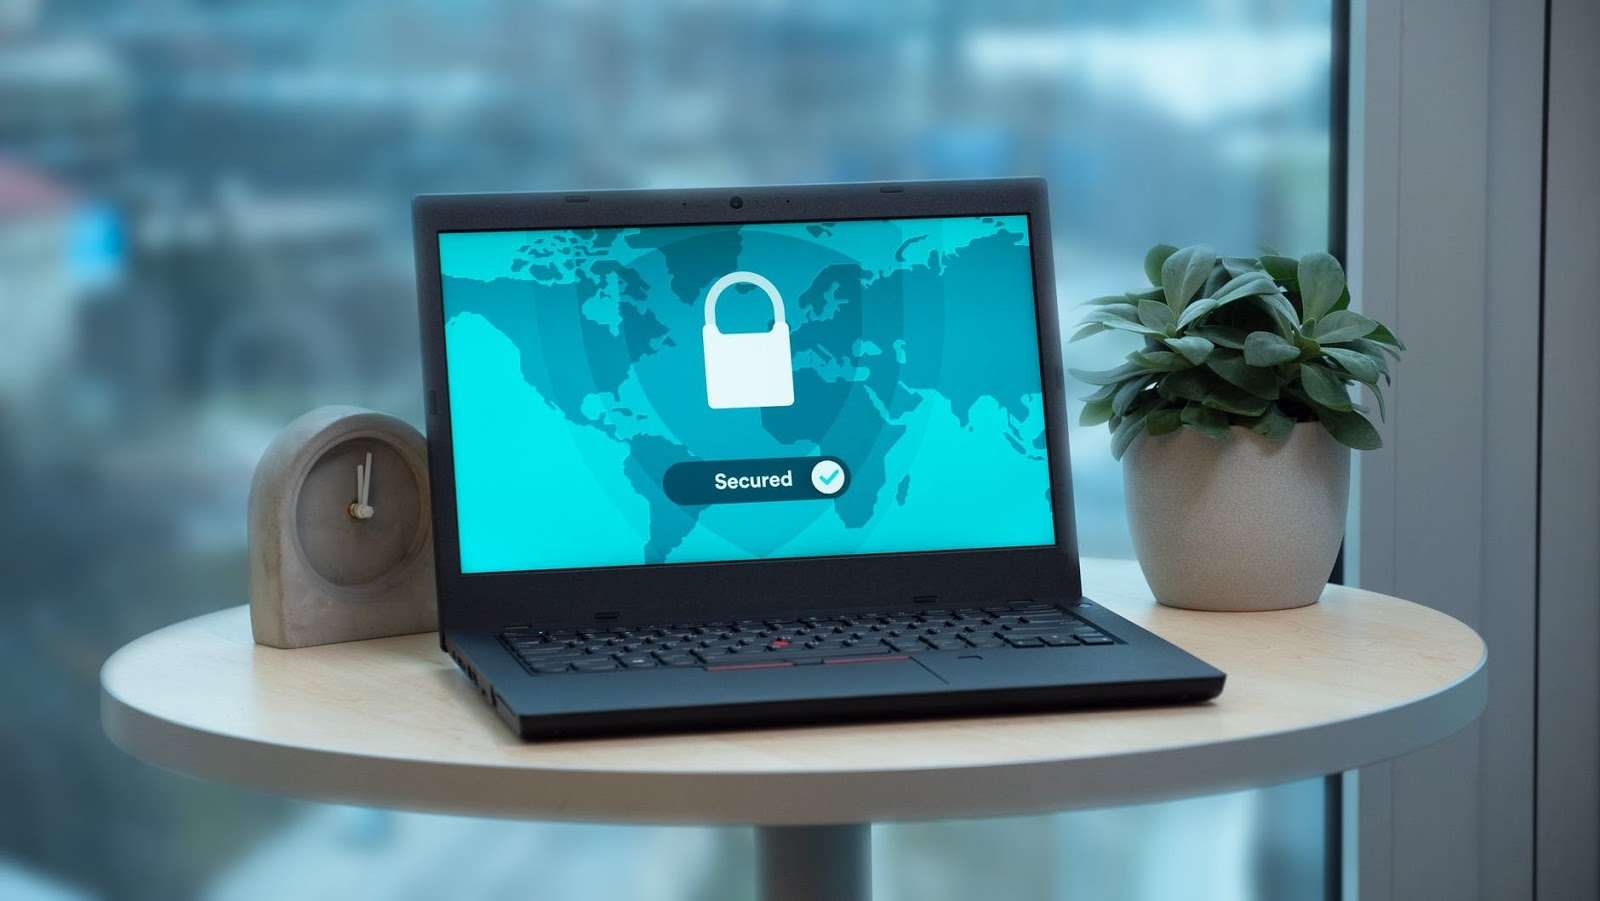 Why You Should Use a VPN?